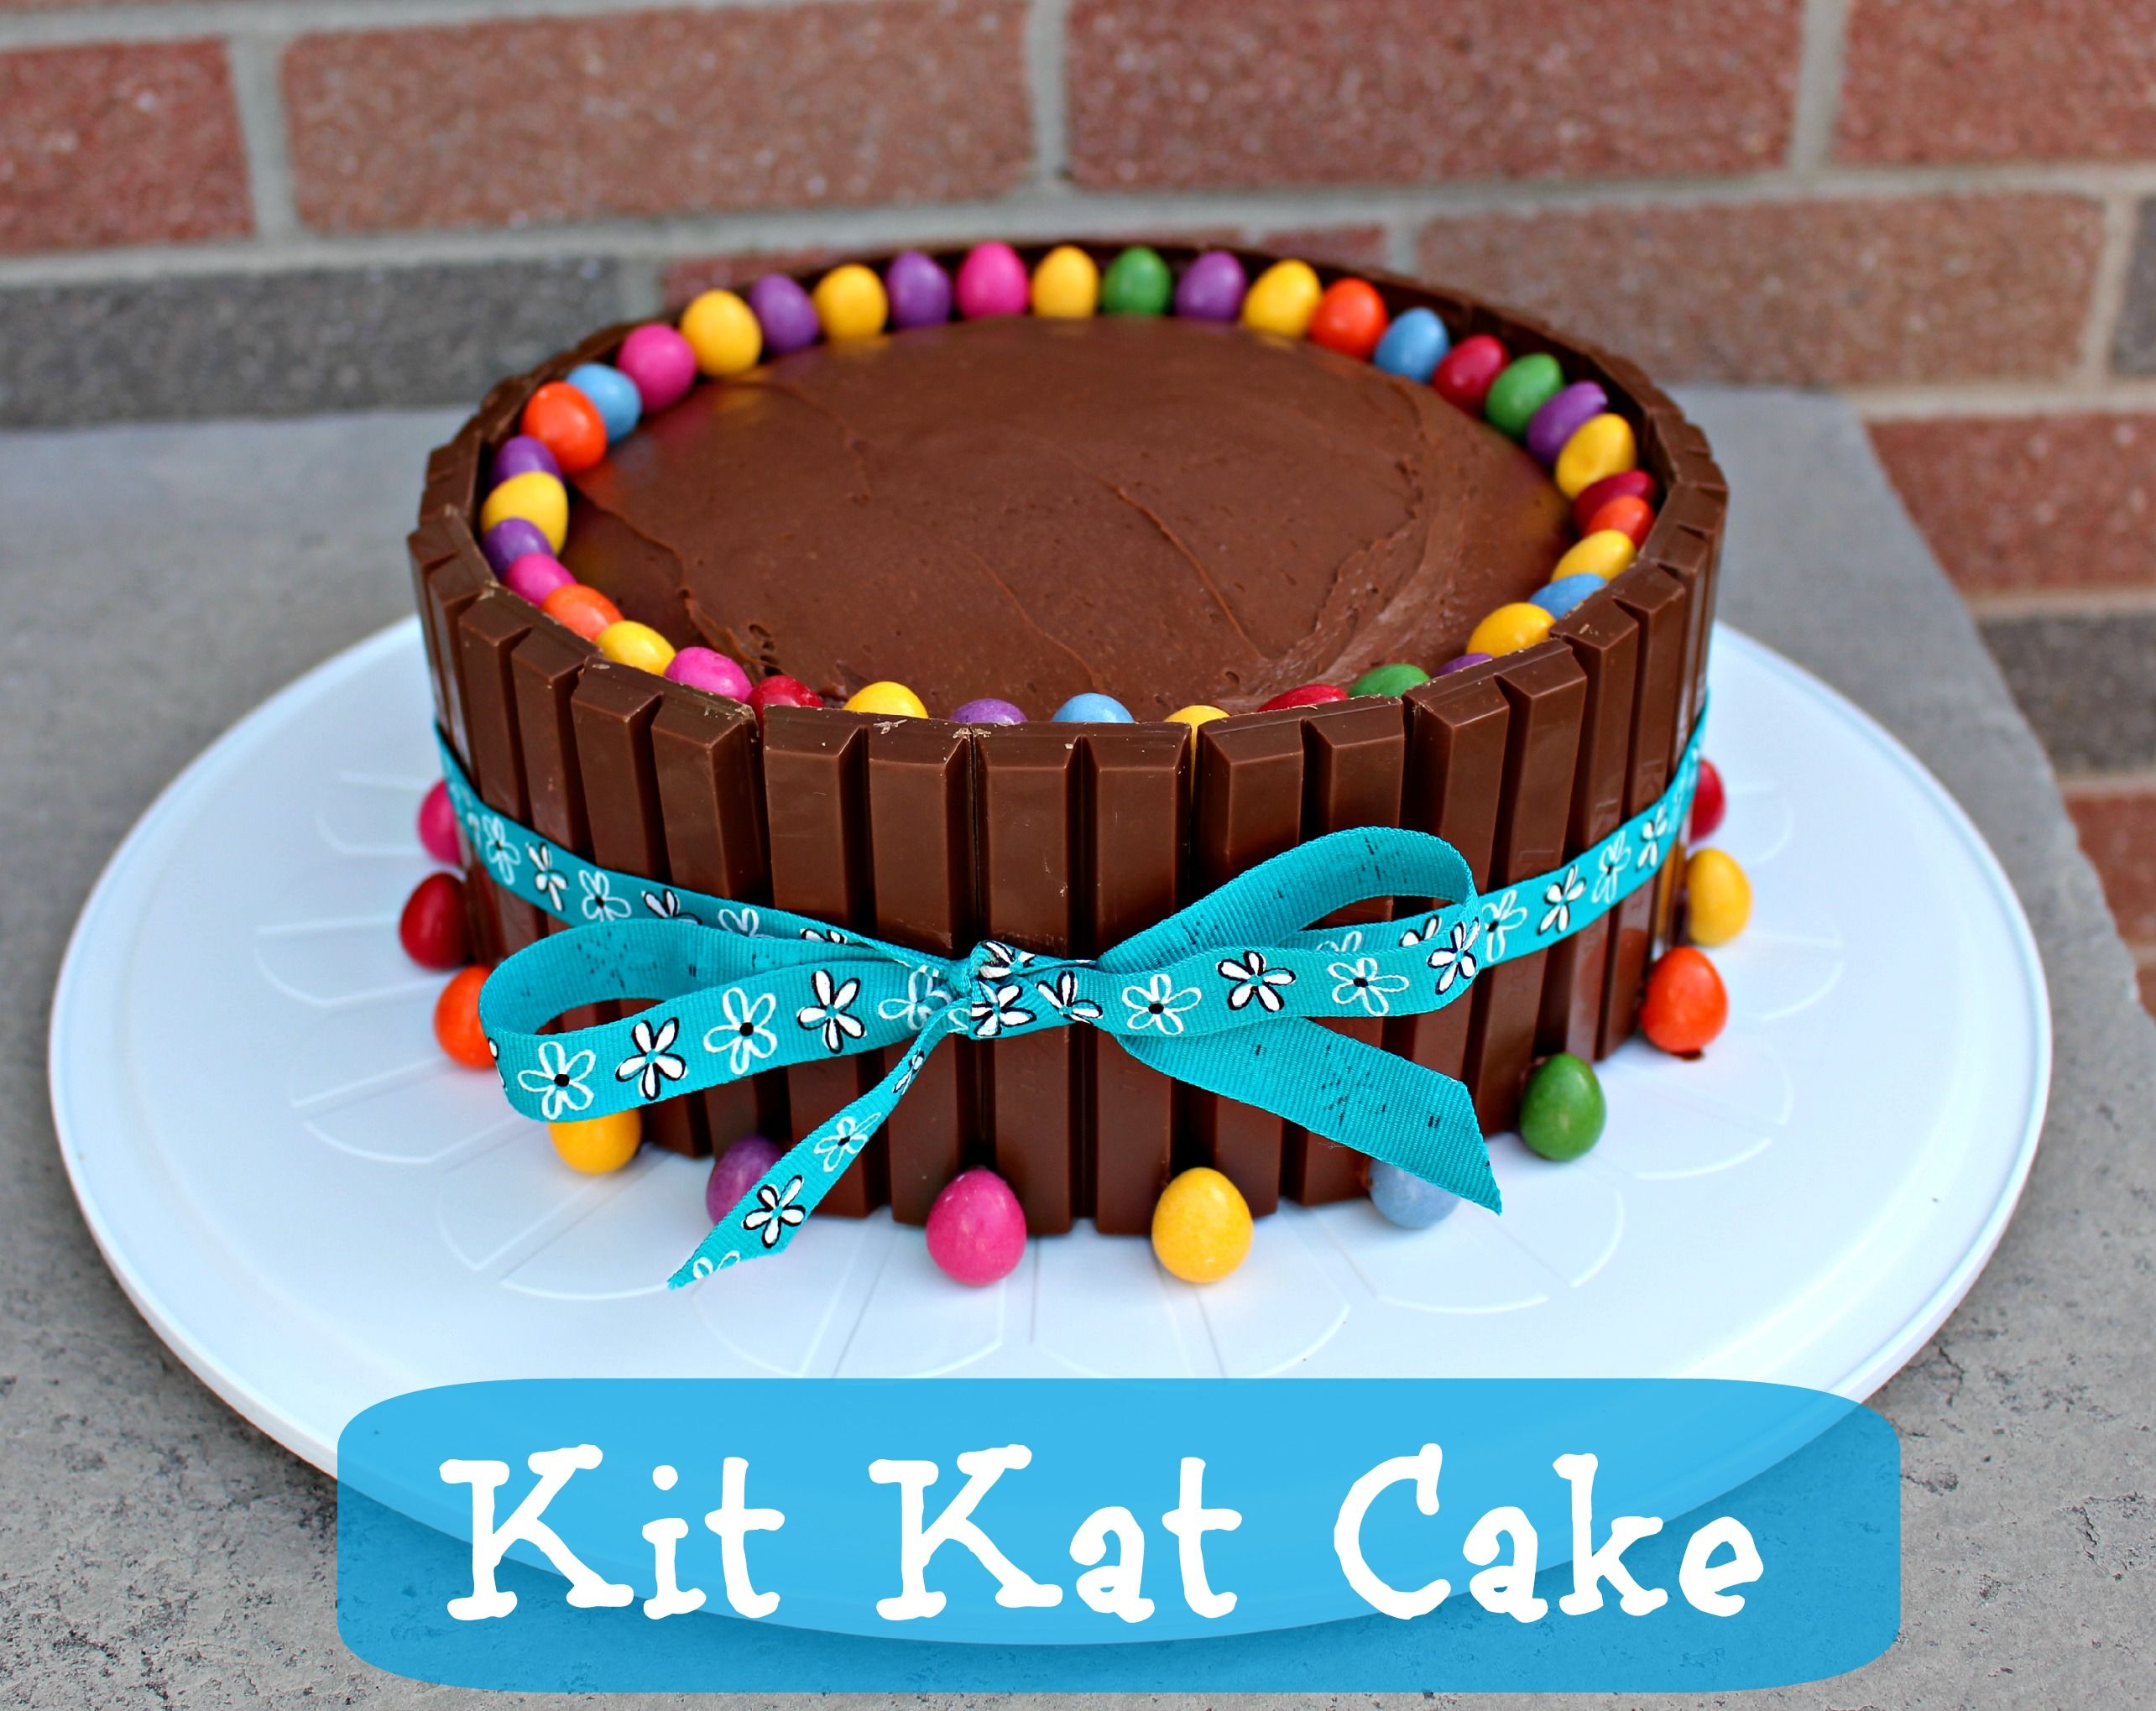 Kit Kat Cake Recipe Candy Bars 14th Birthday And Gluten Free